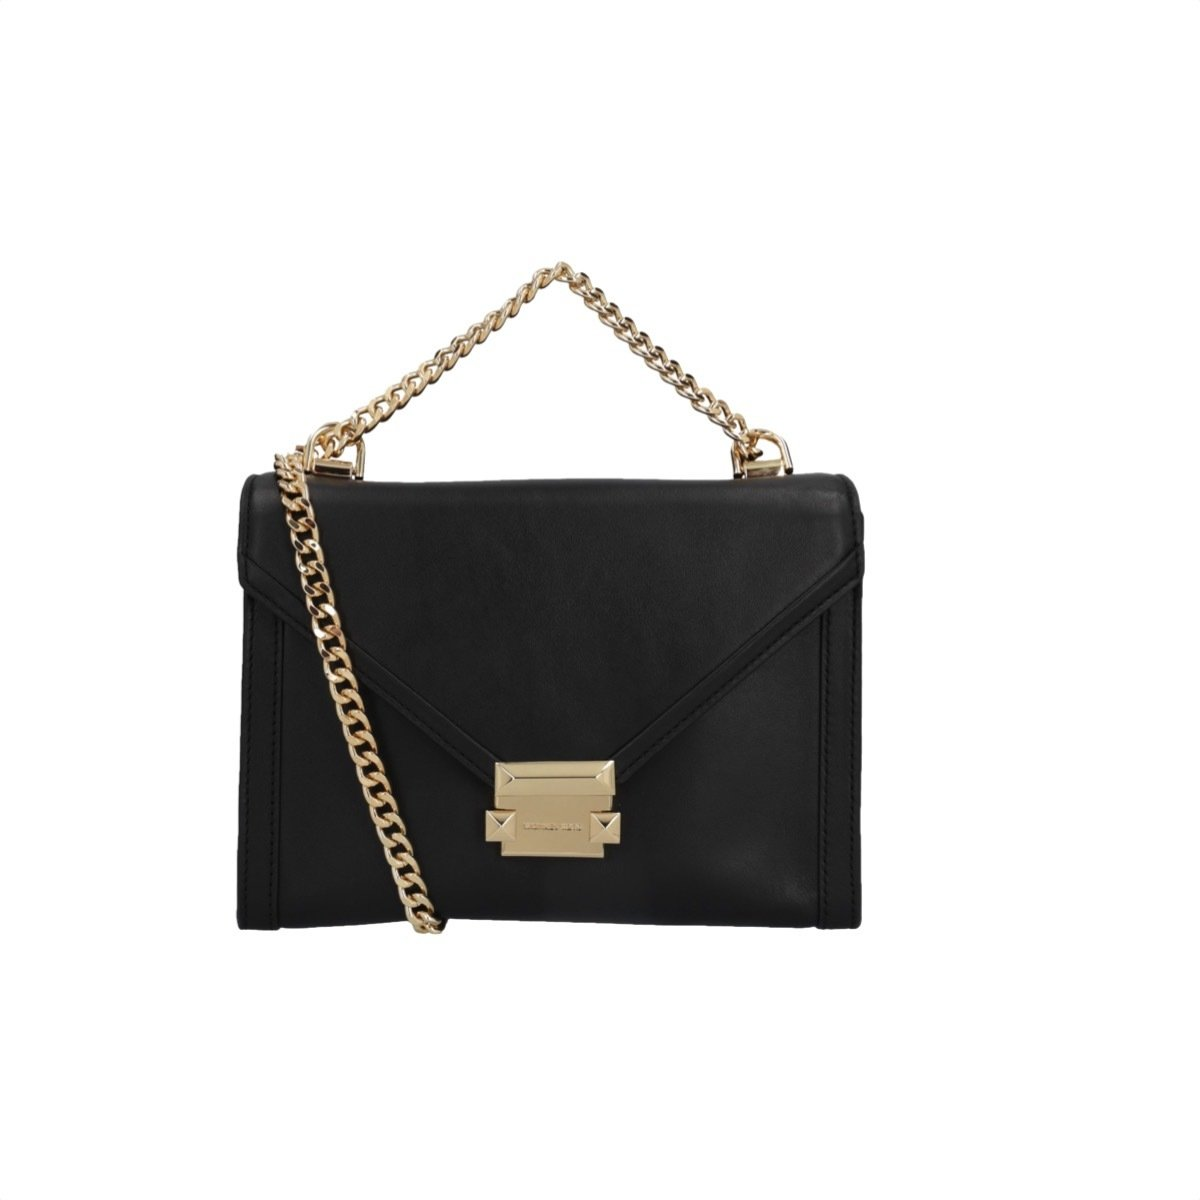 MICHAEL KORS - Whitney LG Shoulder Bag - Black